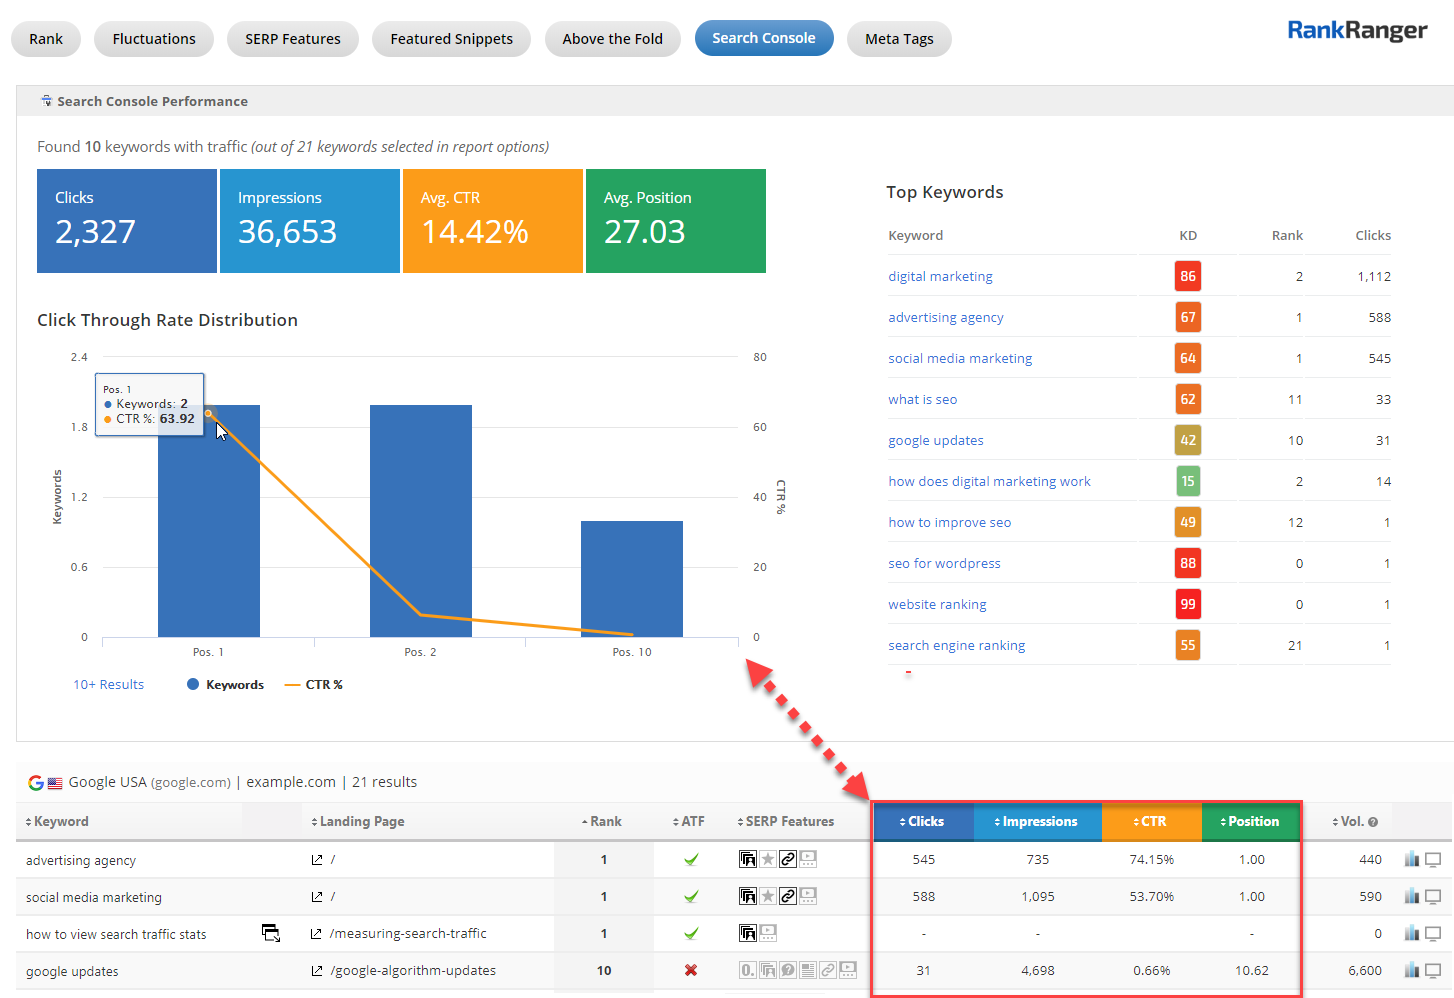 Search Console Rank Insights Report